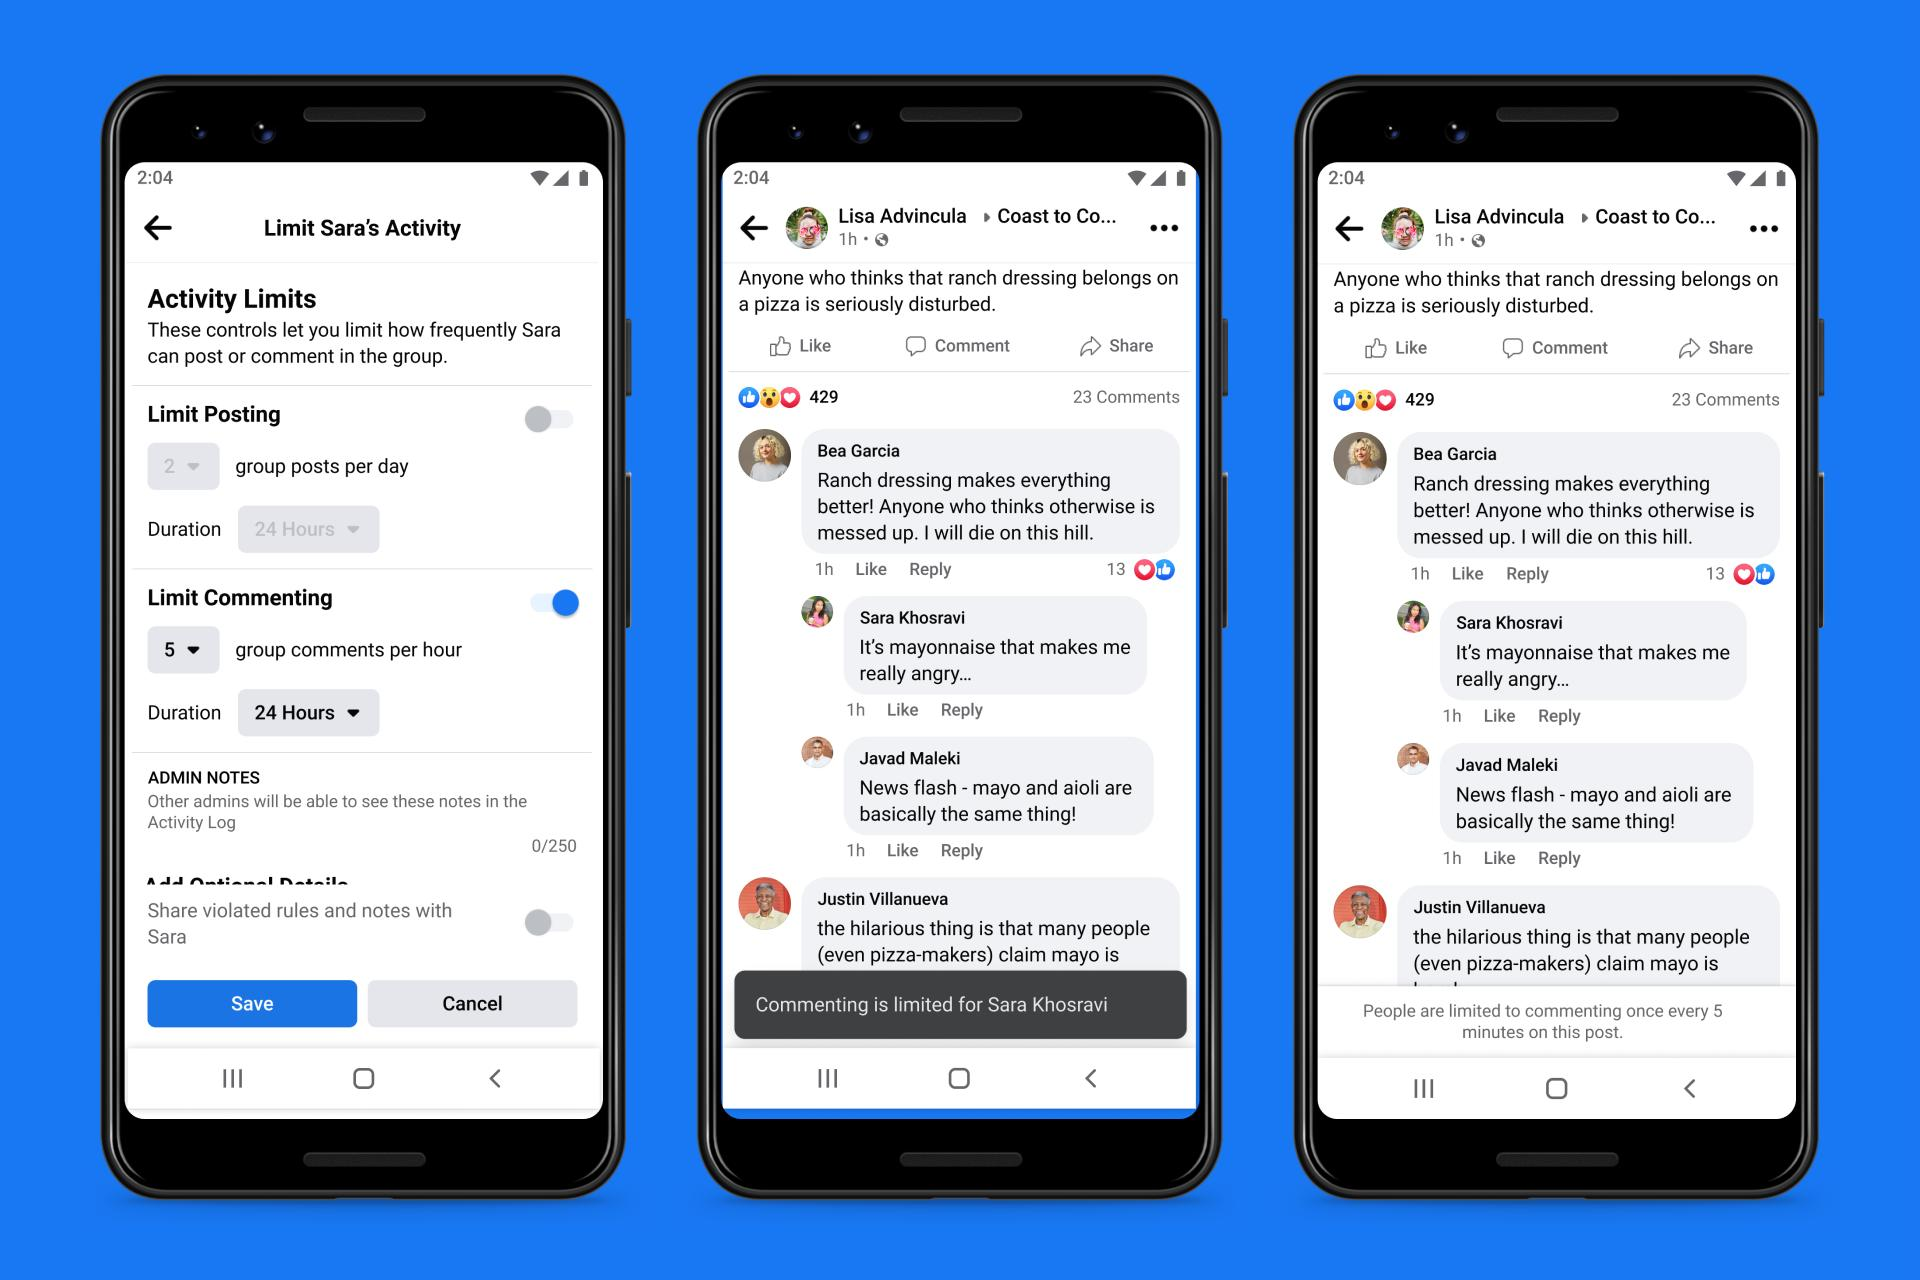 Facebook will allow group admins to 'slow down' comments to keep conversations from getting too heated or toxic.